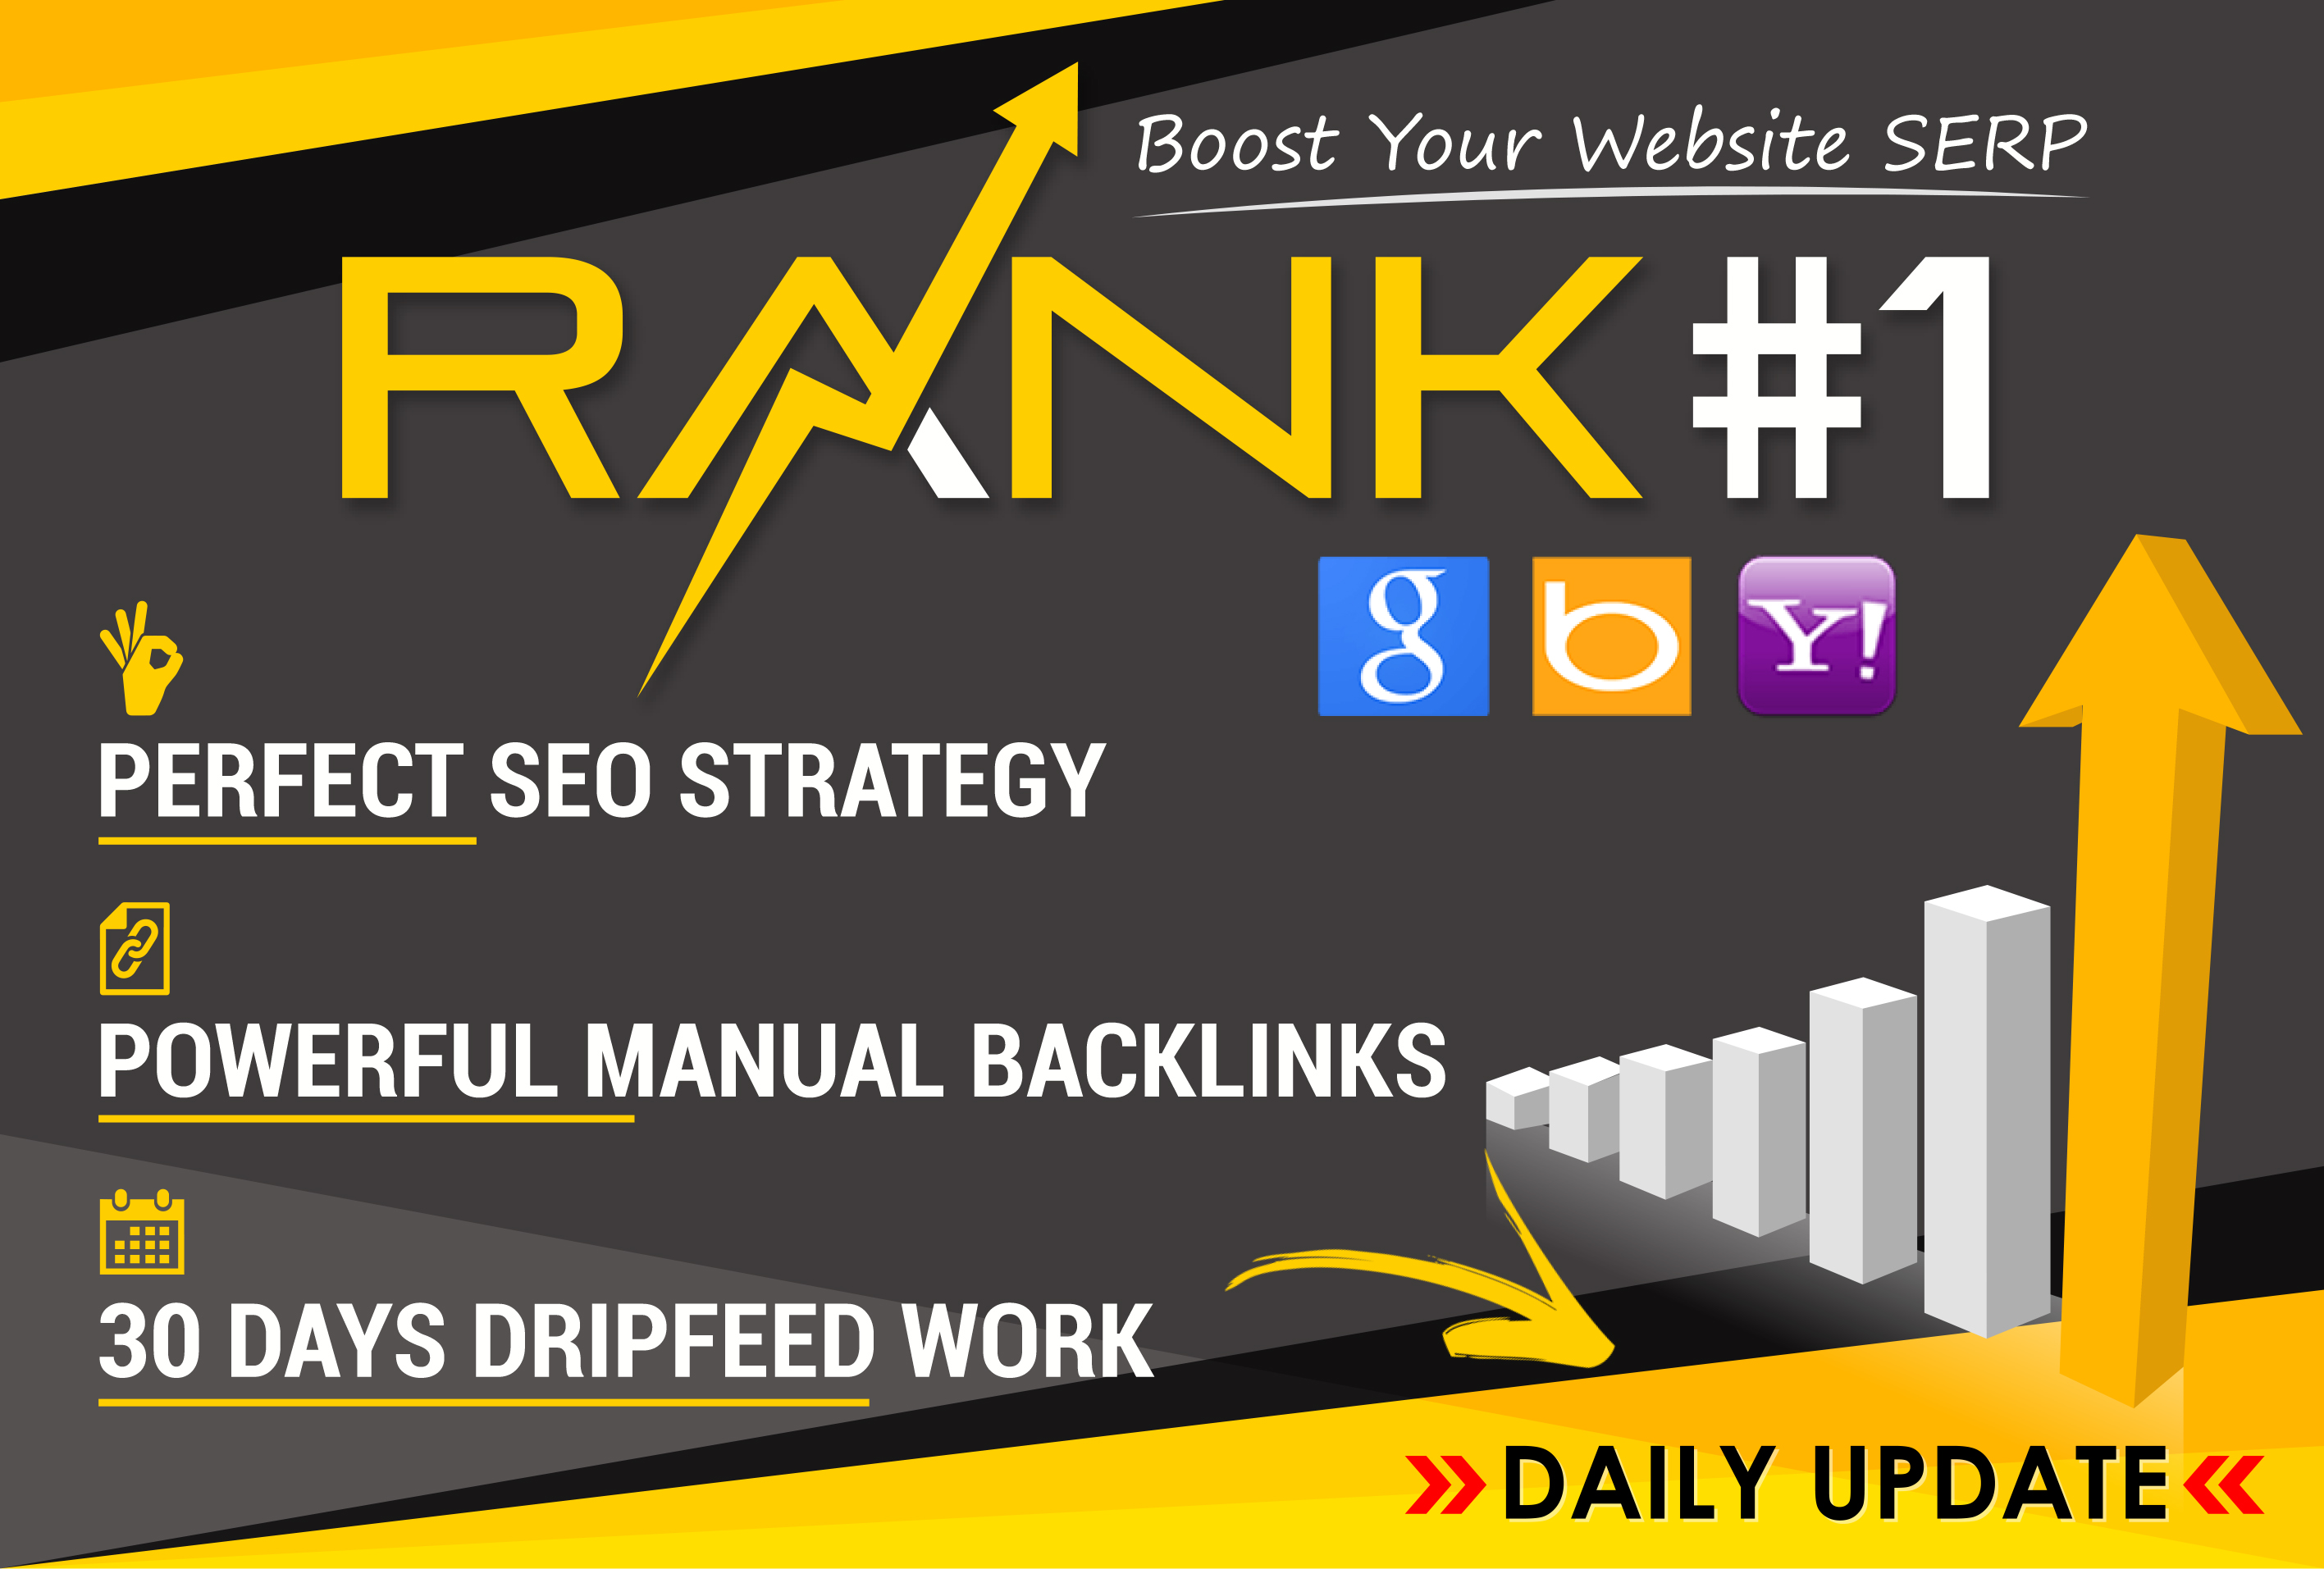 I Will Rank Your Site In 30 Days Drip Feed